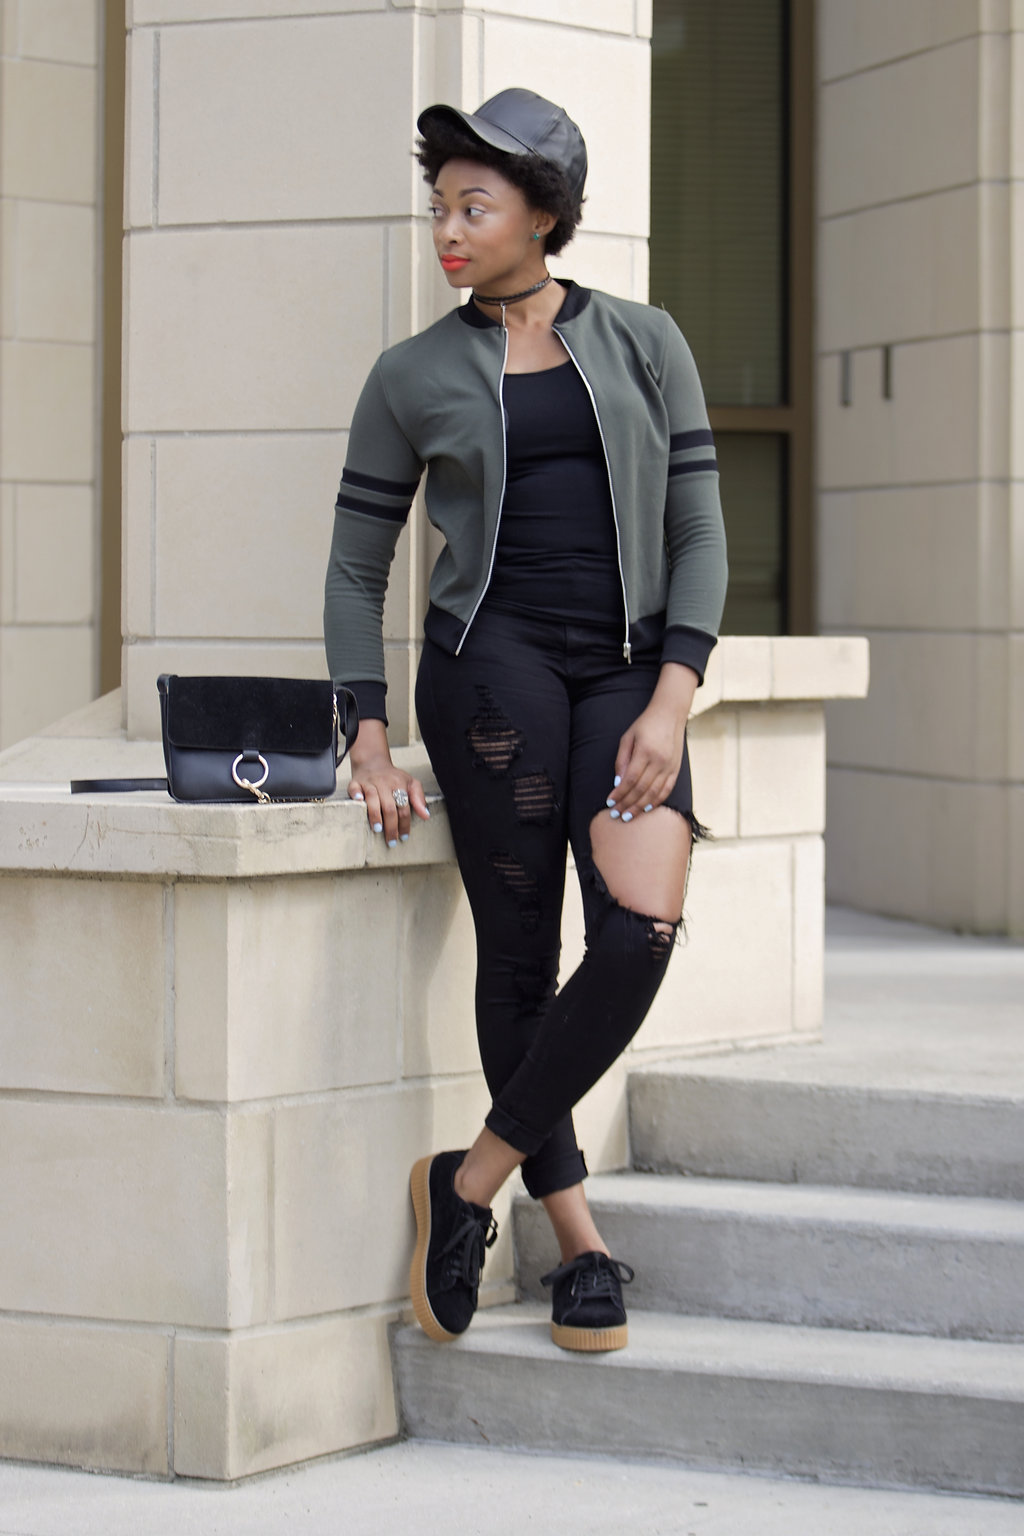 baton rouge fashion blogger, candace hampton